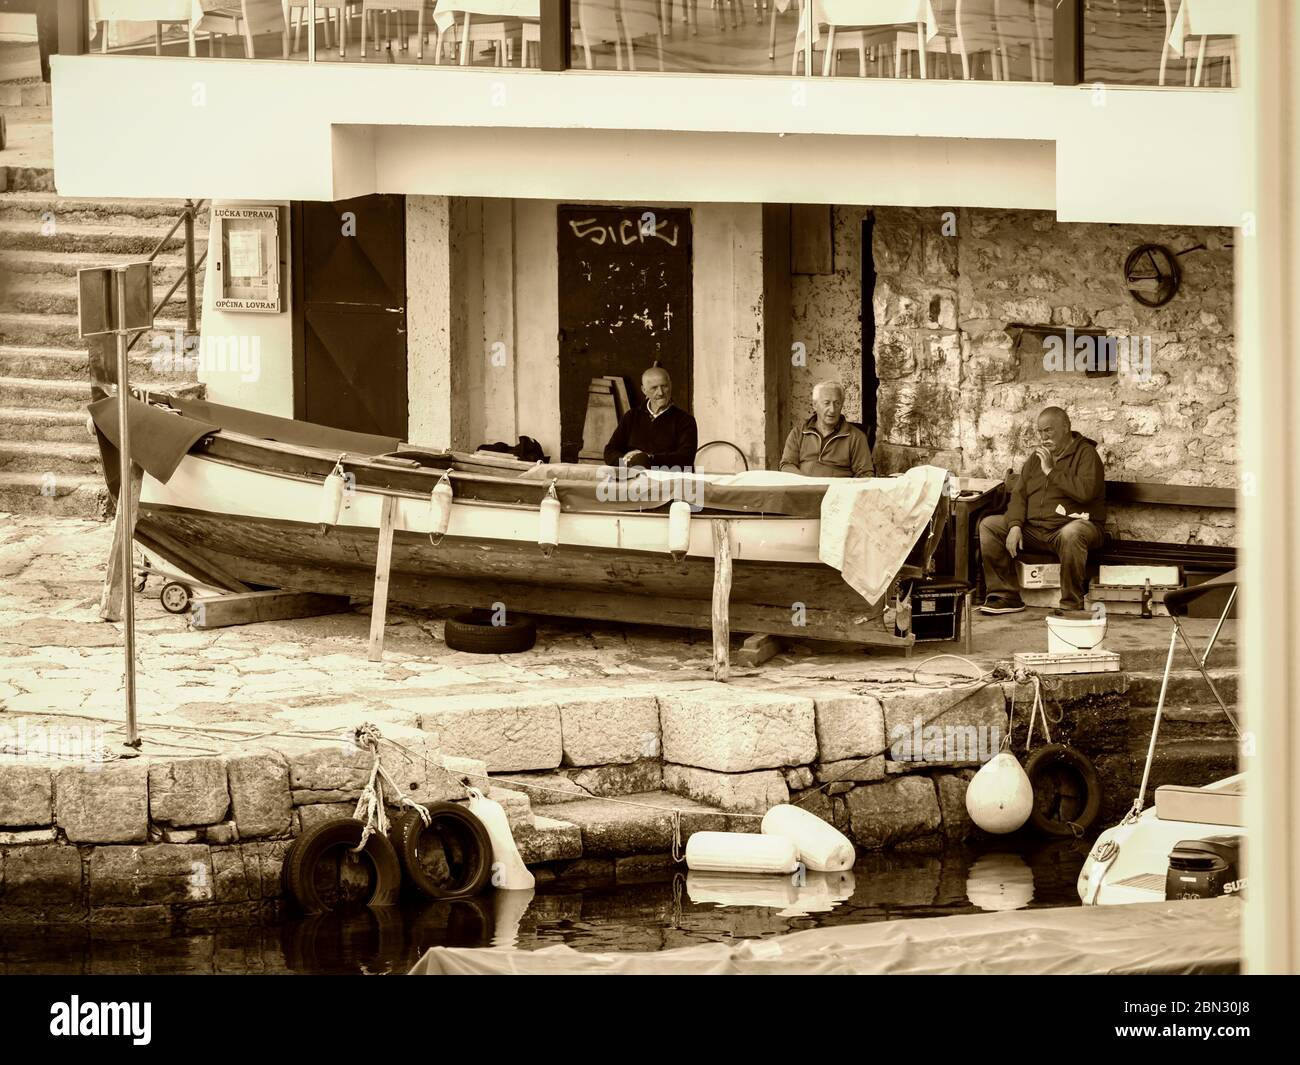 Mediterranean senior male people sitting seated chatting near wooden boat retro look sepia monochrome almost Black and White Lovran Croatia Europe Stock Photo